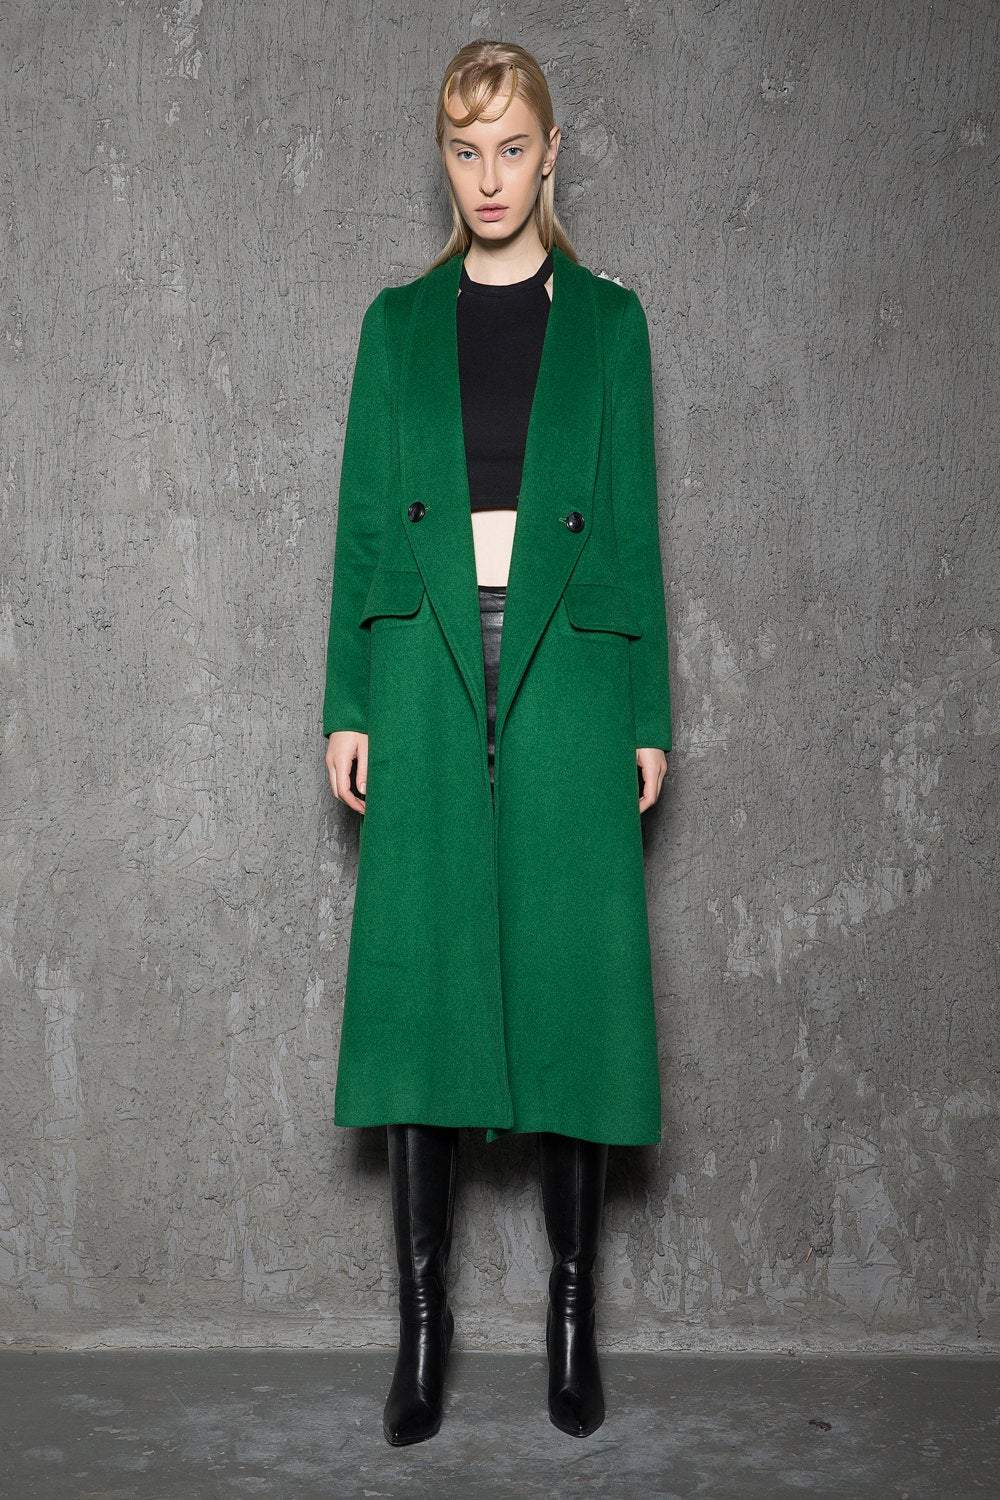 Green wool coat, Wool Coat, coat, jacket, Emerald green coat, maxi coat, Winter Coat, vintage coat, trench coat, winter coat green C715